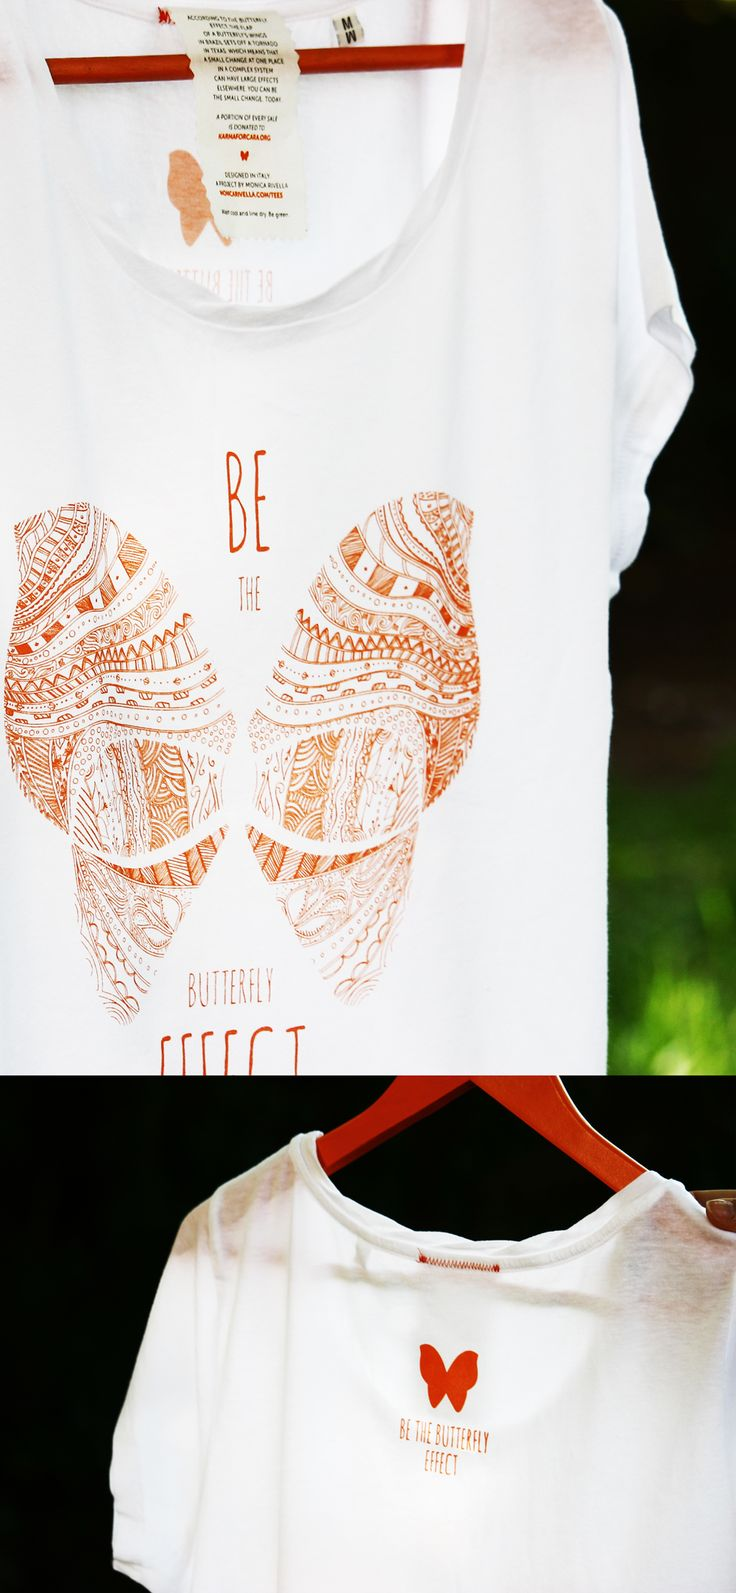 Be the Butterfly Effect and start changing the world! SHOP FOR A CAUSE, part of the proceeds from each t-shirt will be donated to charity. #tshirt #cause #dogood #begood #feelgood #gift #love #friend #change #bethechange #butterfly